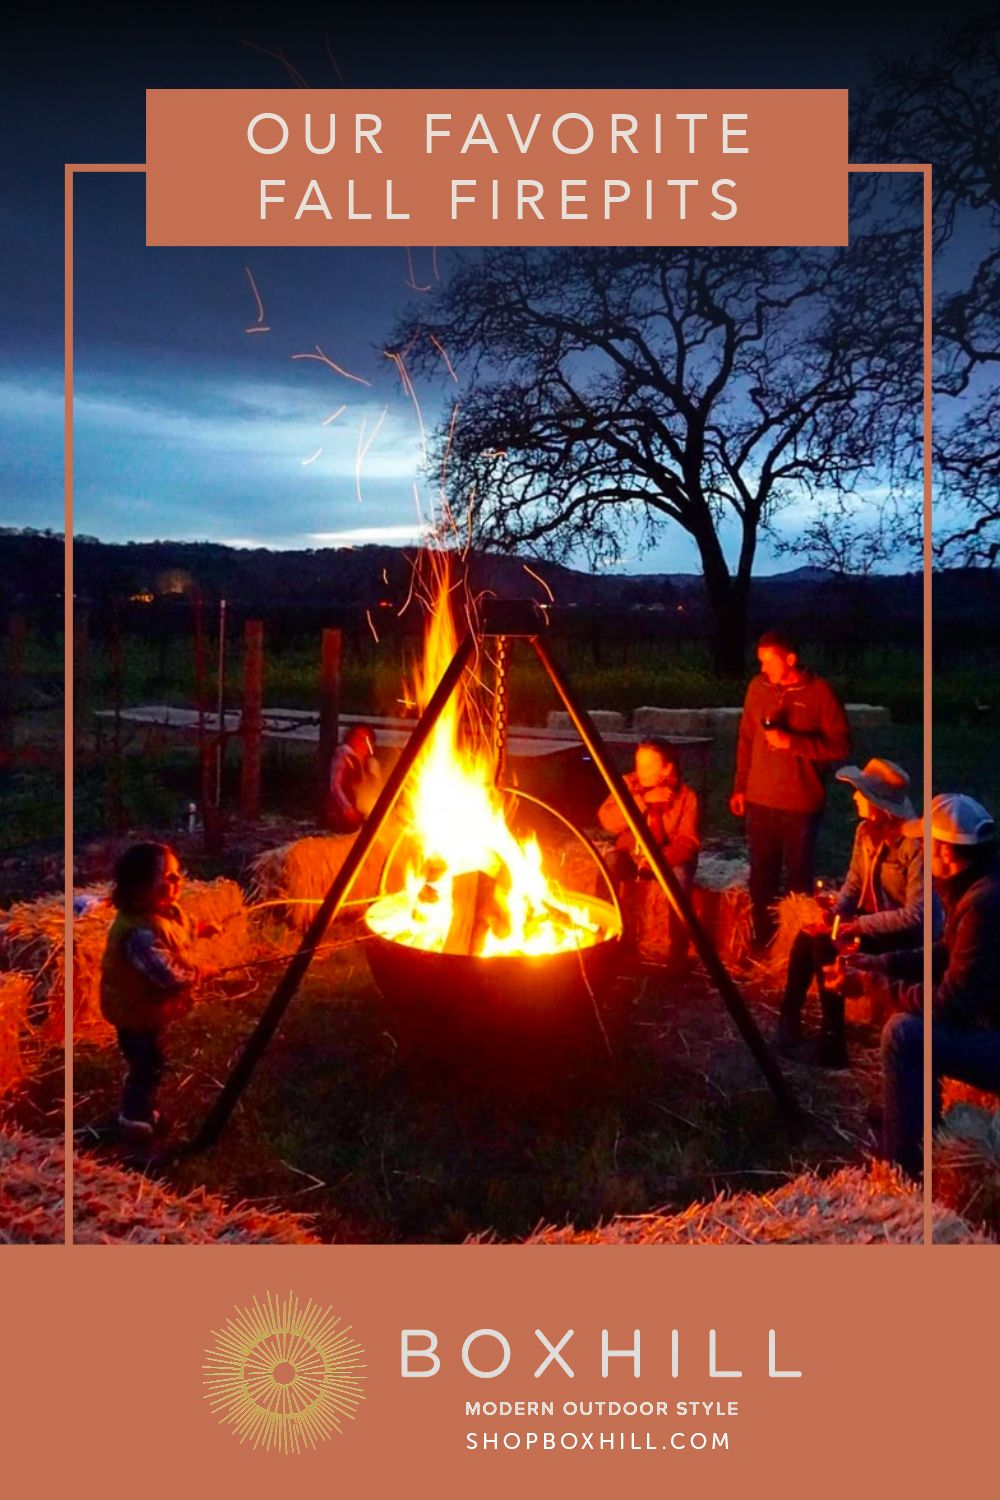 Whether it's backyard camping, entertaining outdoors ...